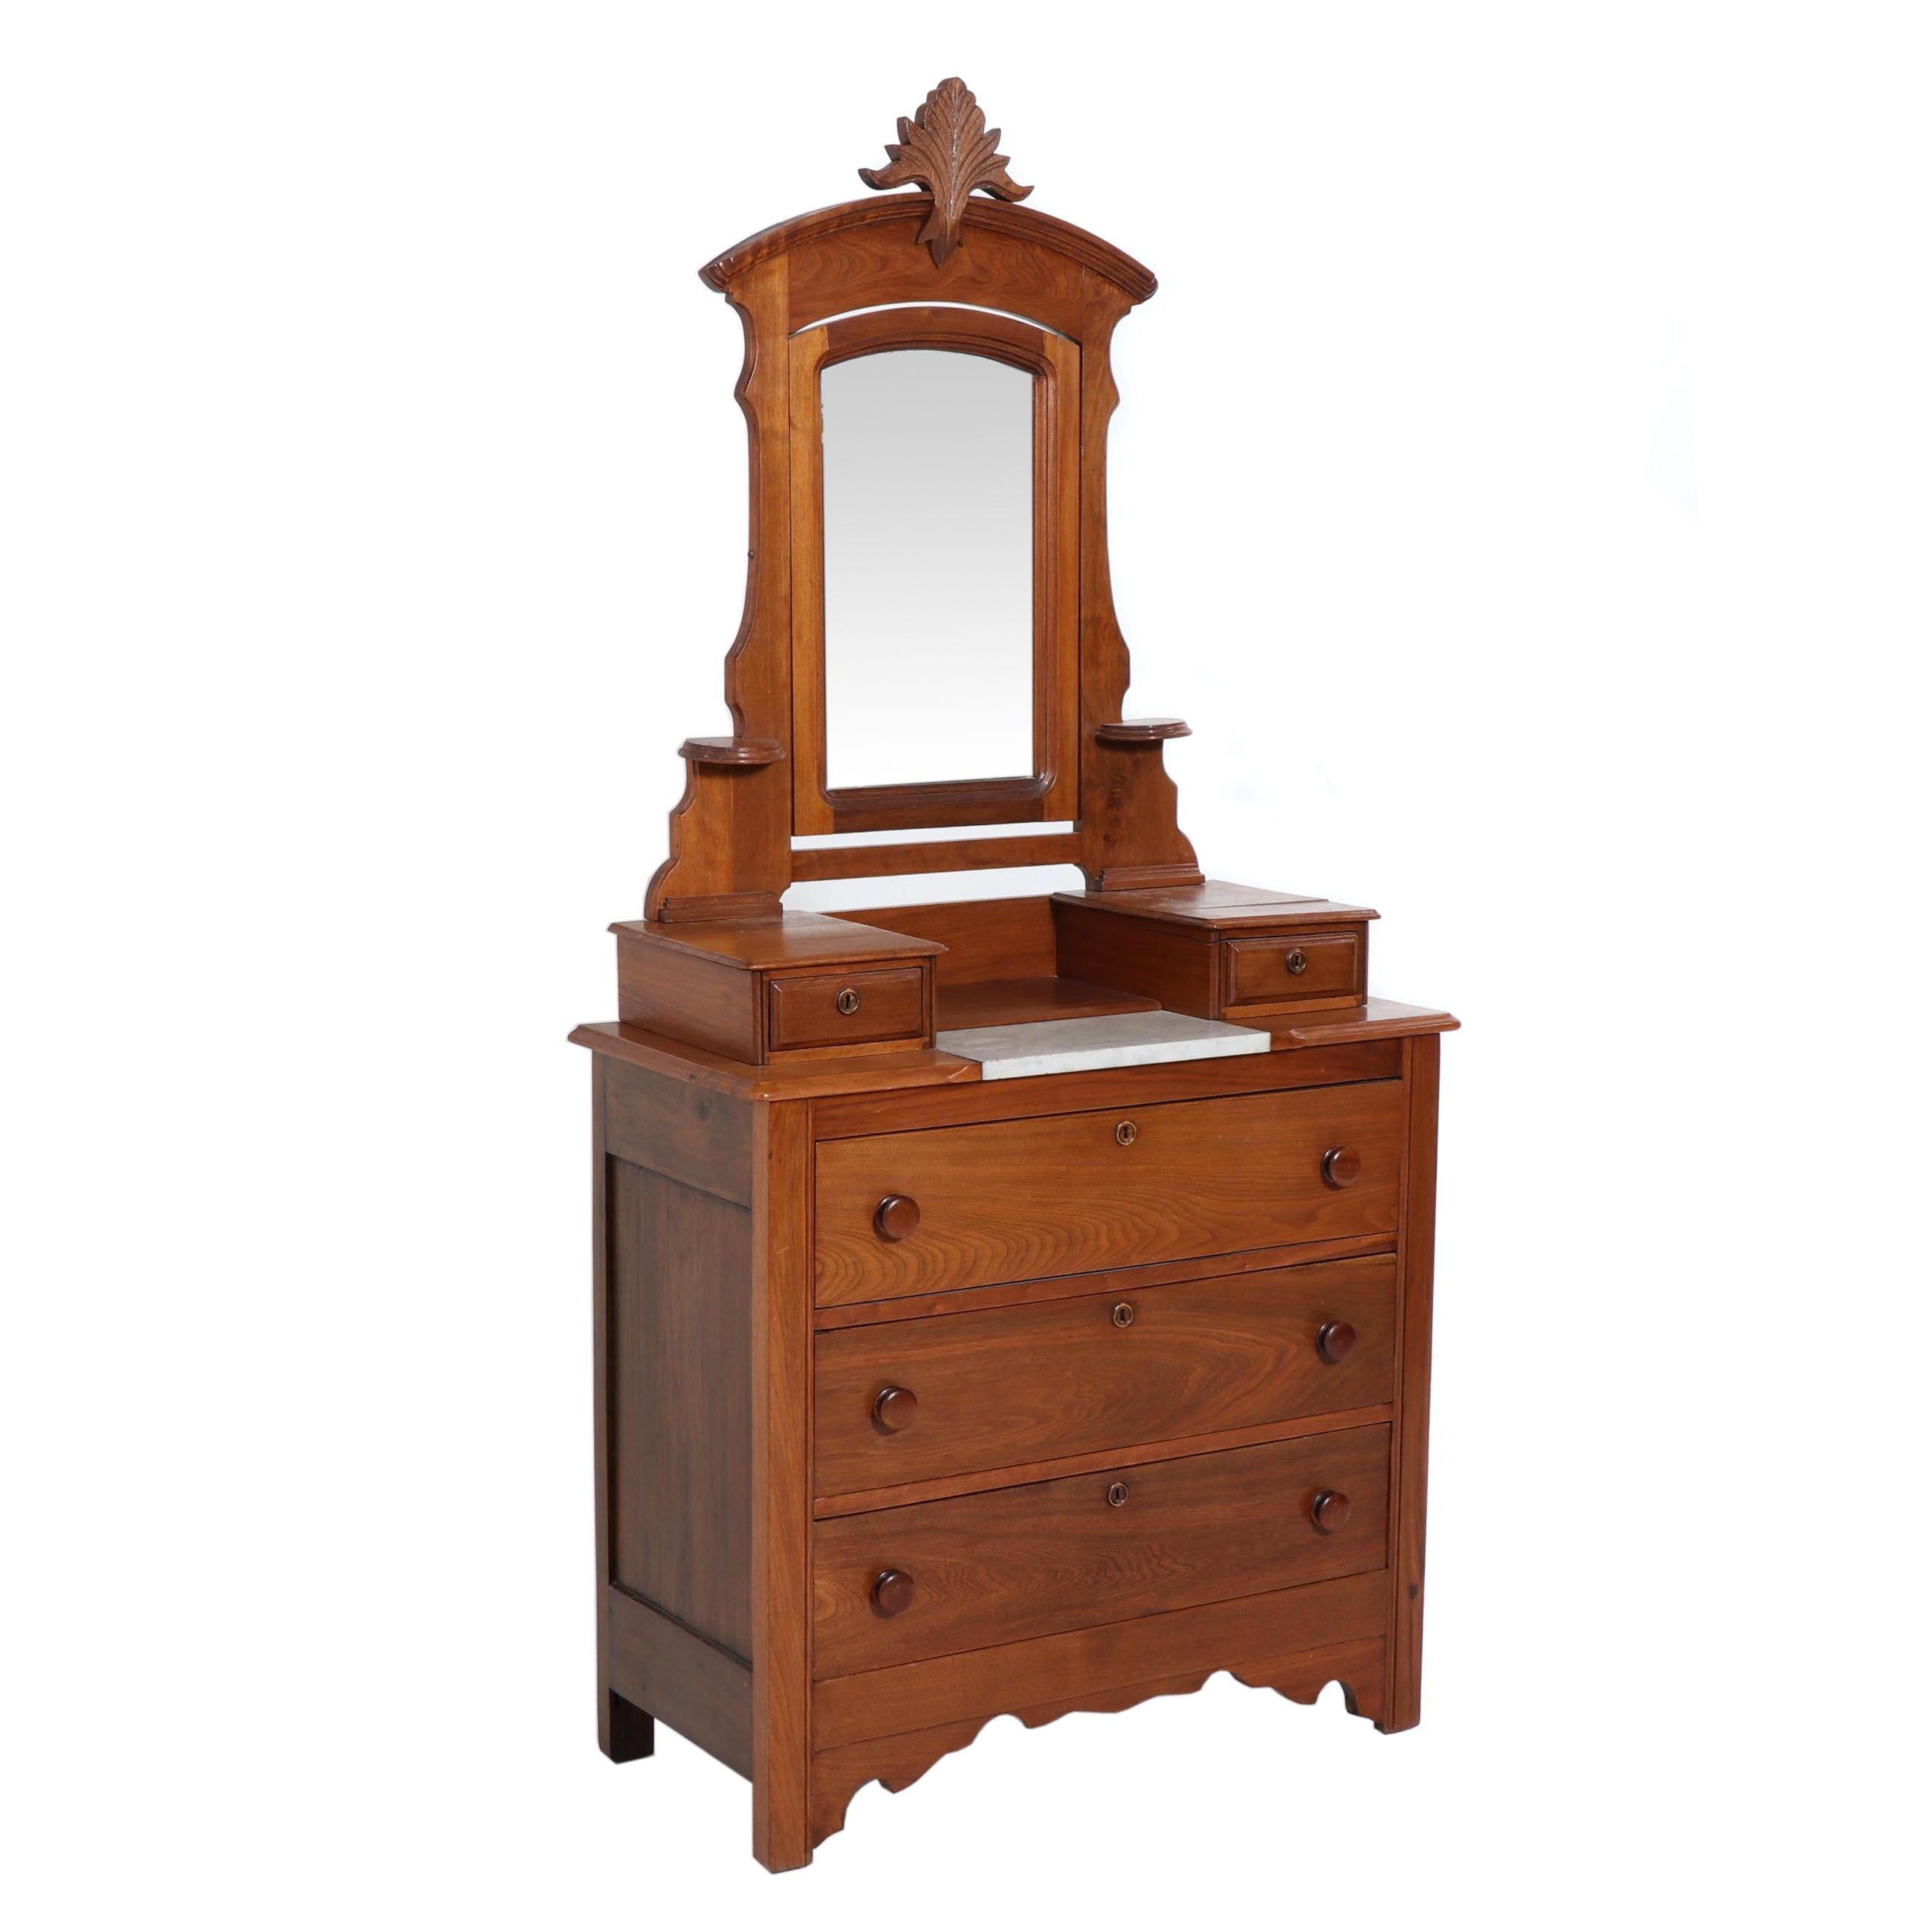 Wood Vintage Reproduction Washstand